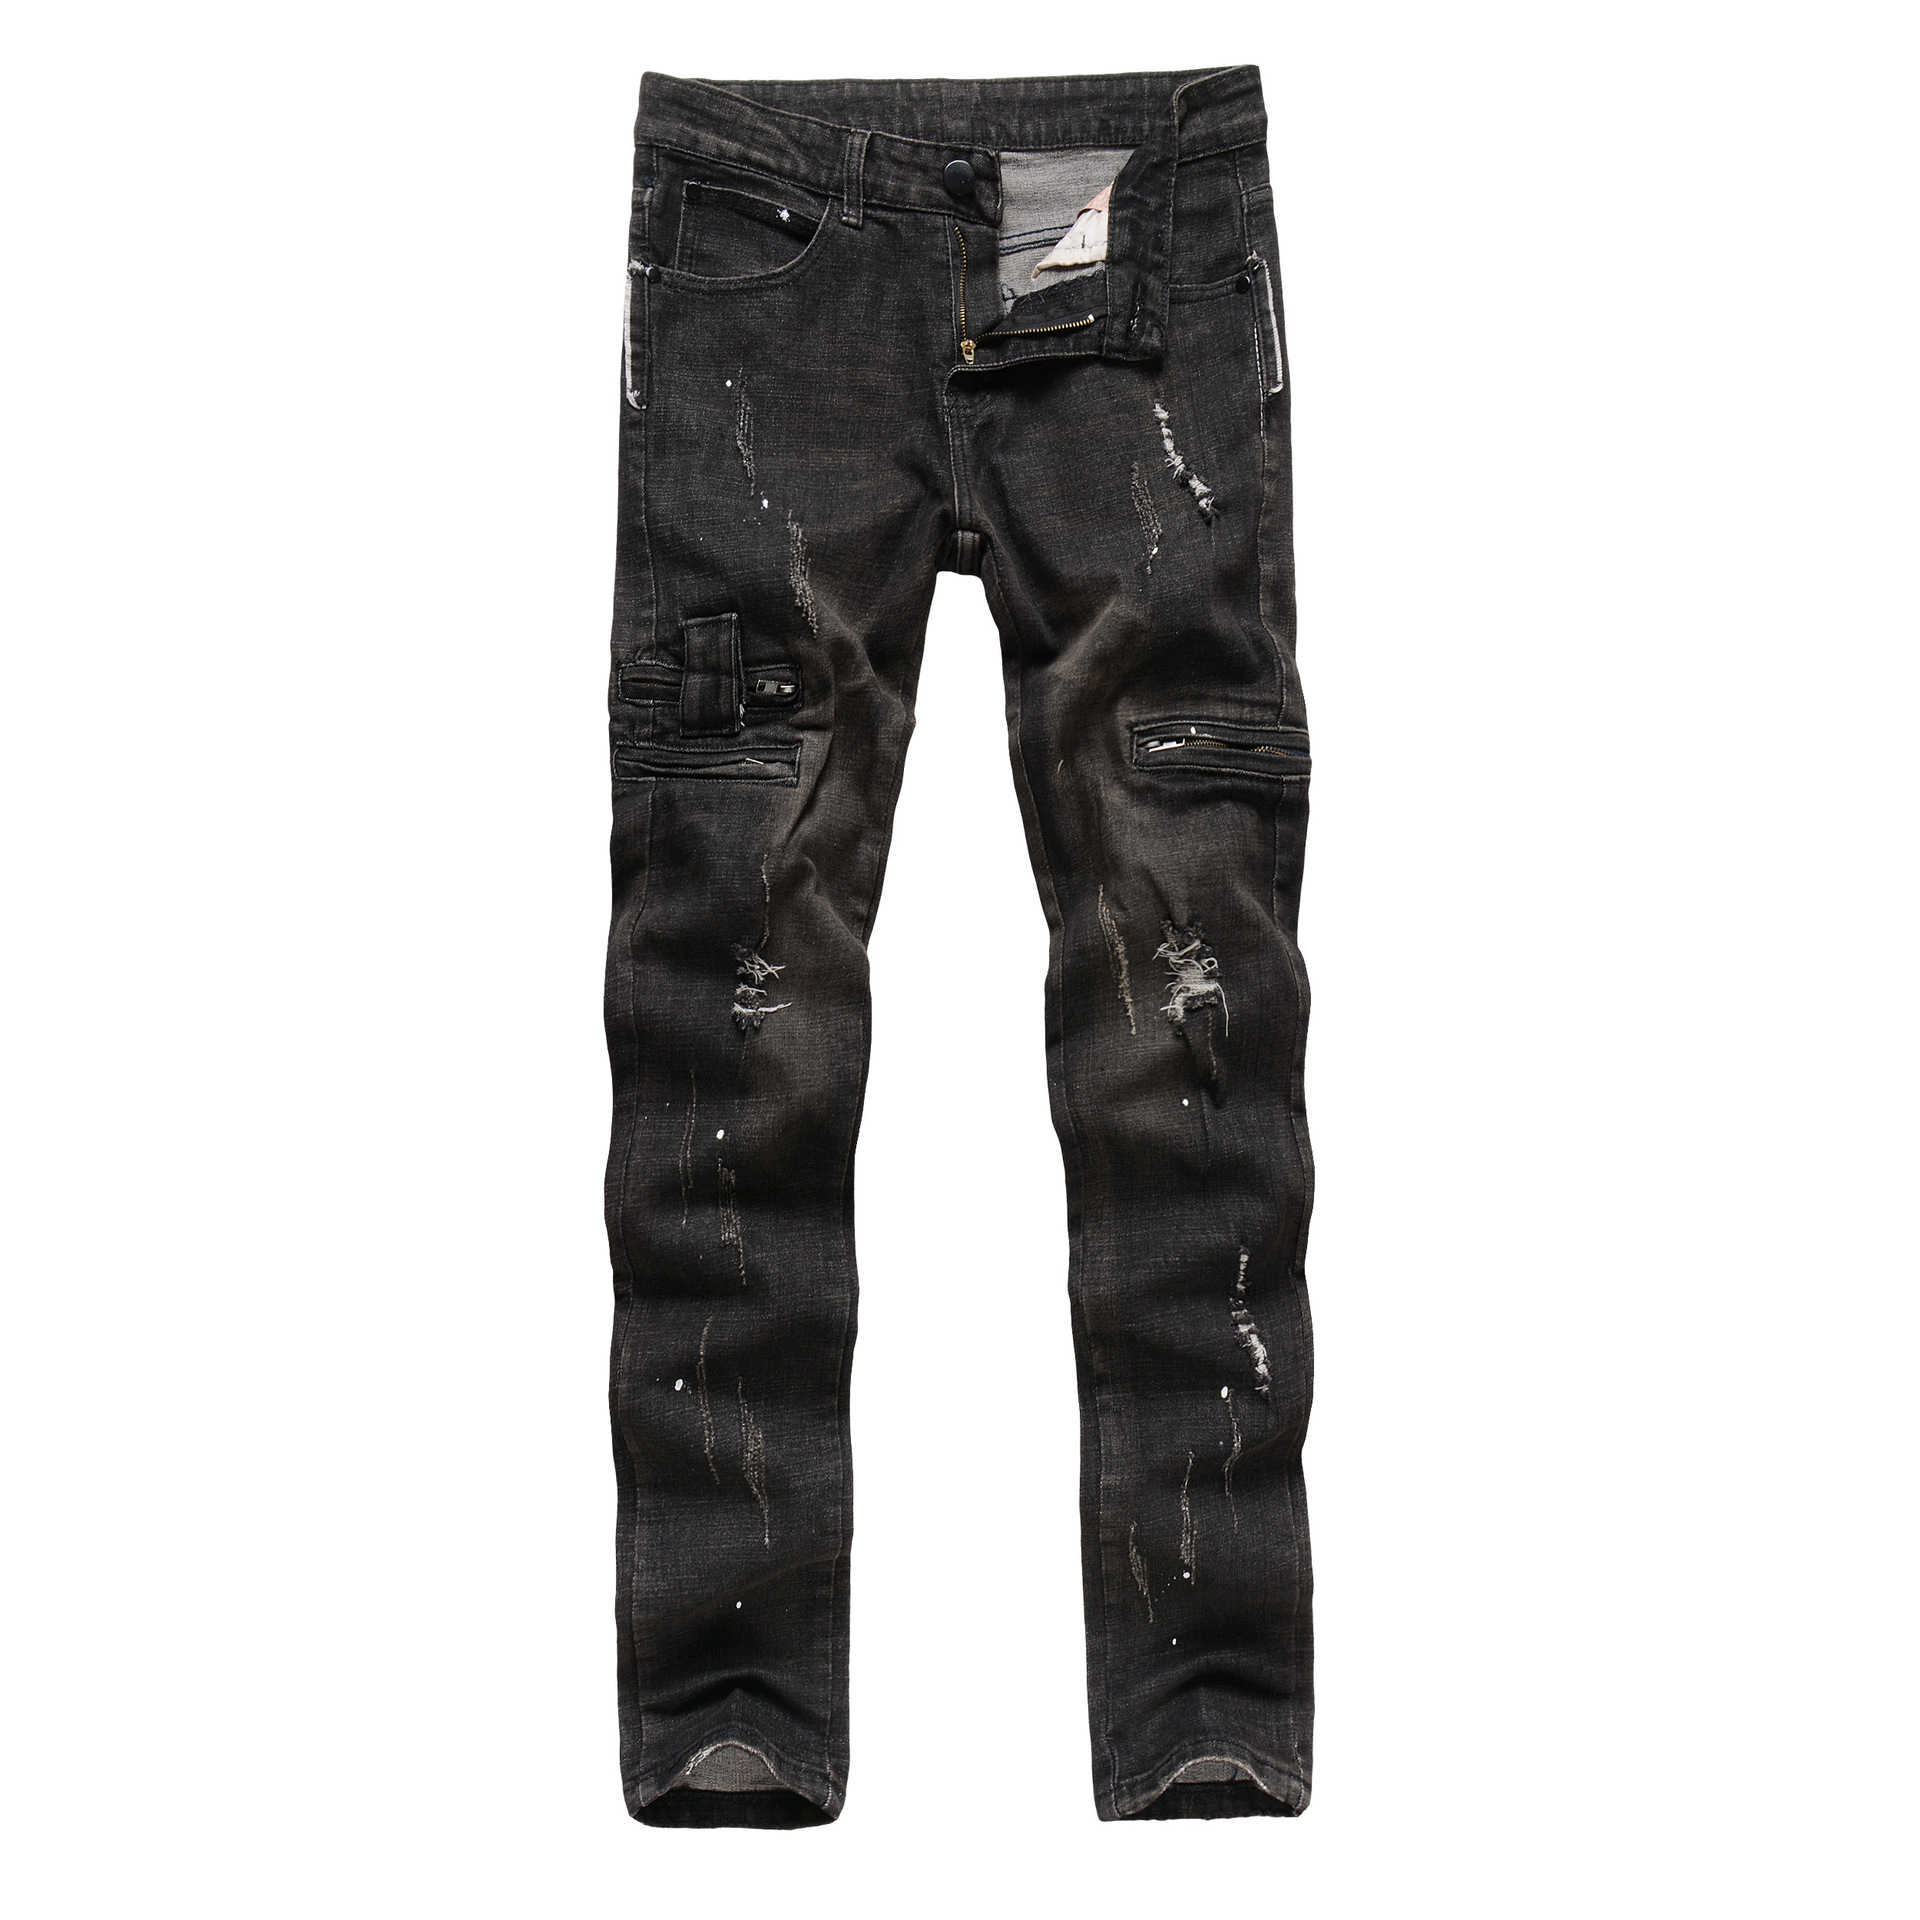 Compare Prices on Popular Mens Jeans Brands- Online Shopping/Buy ...